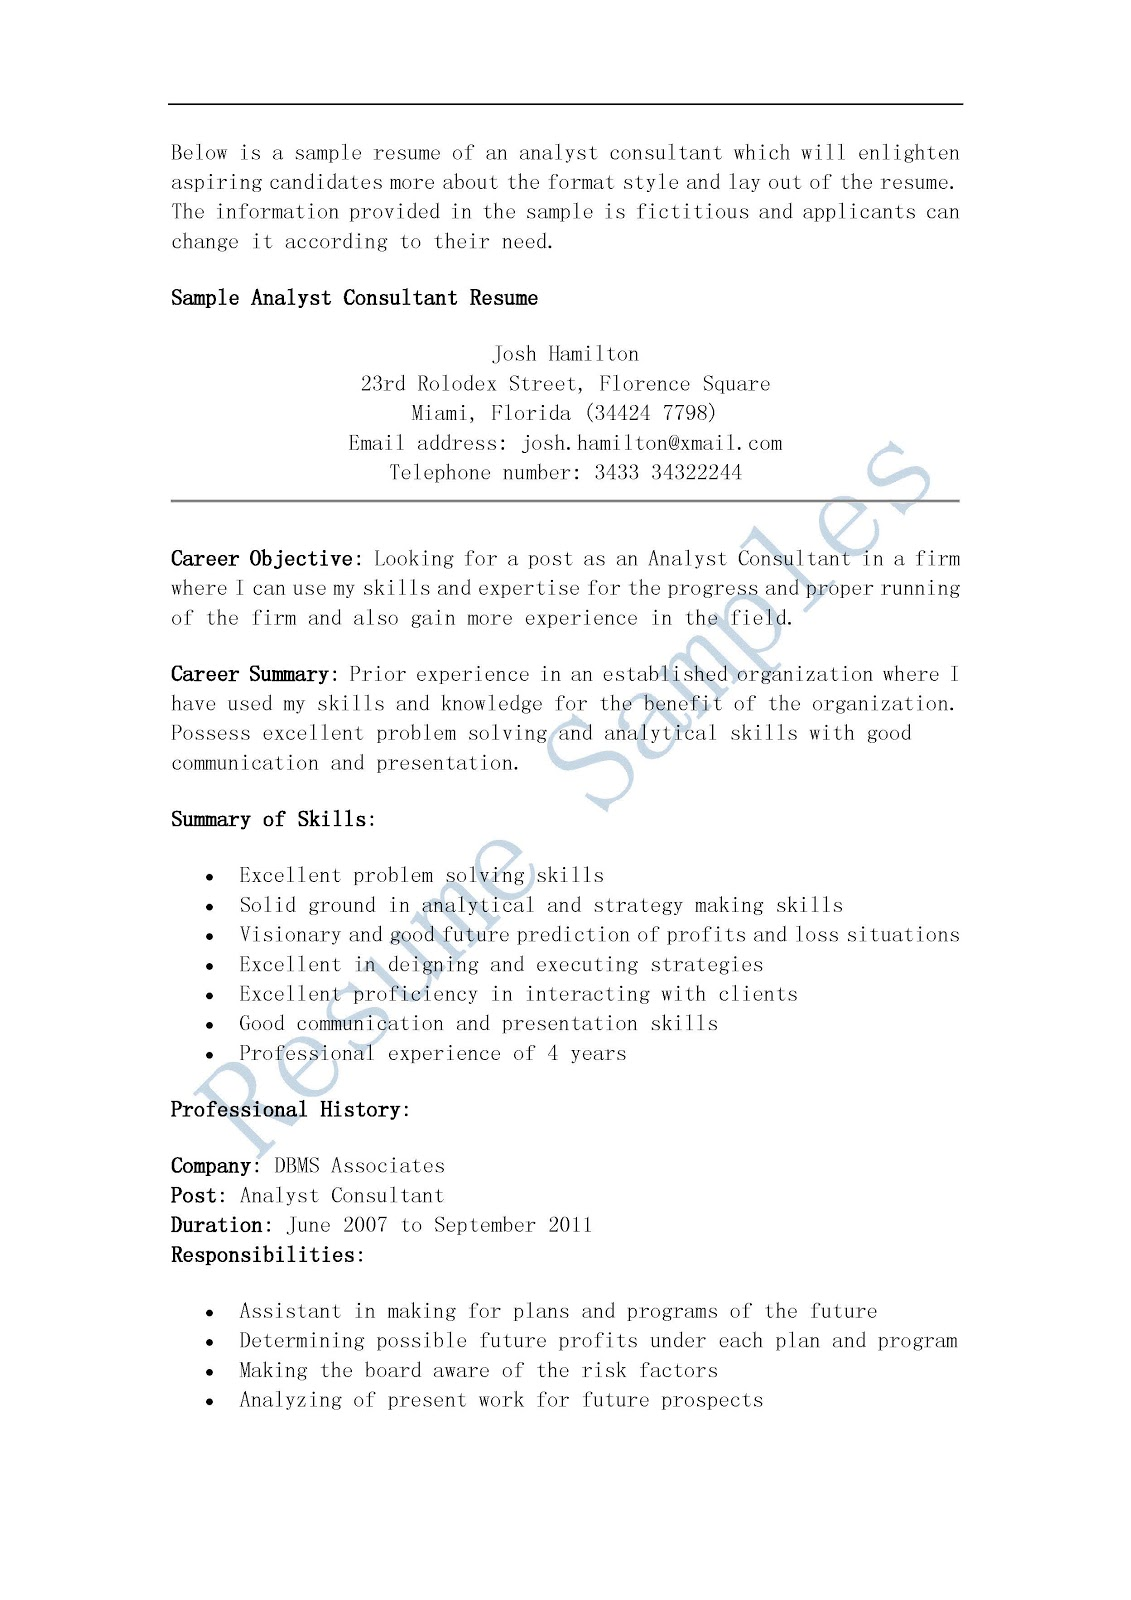 resume samples  analyst consultant resume